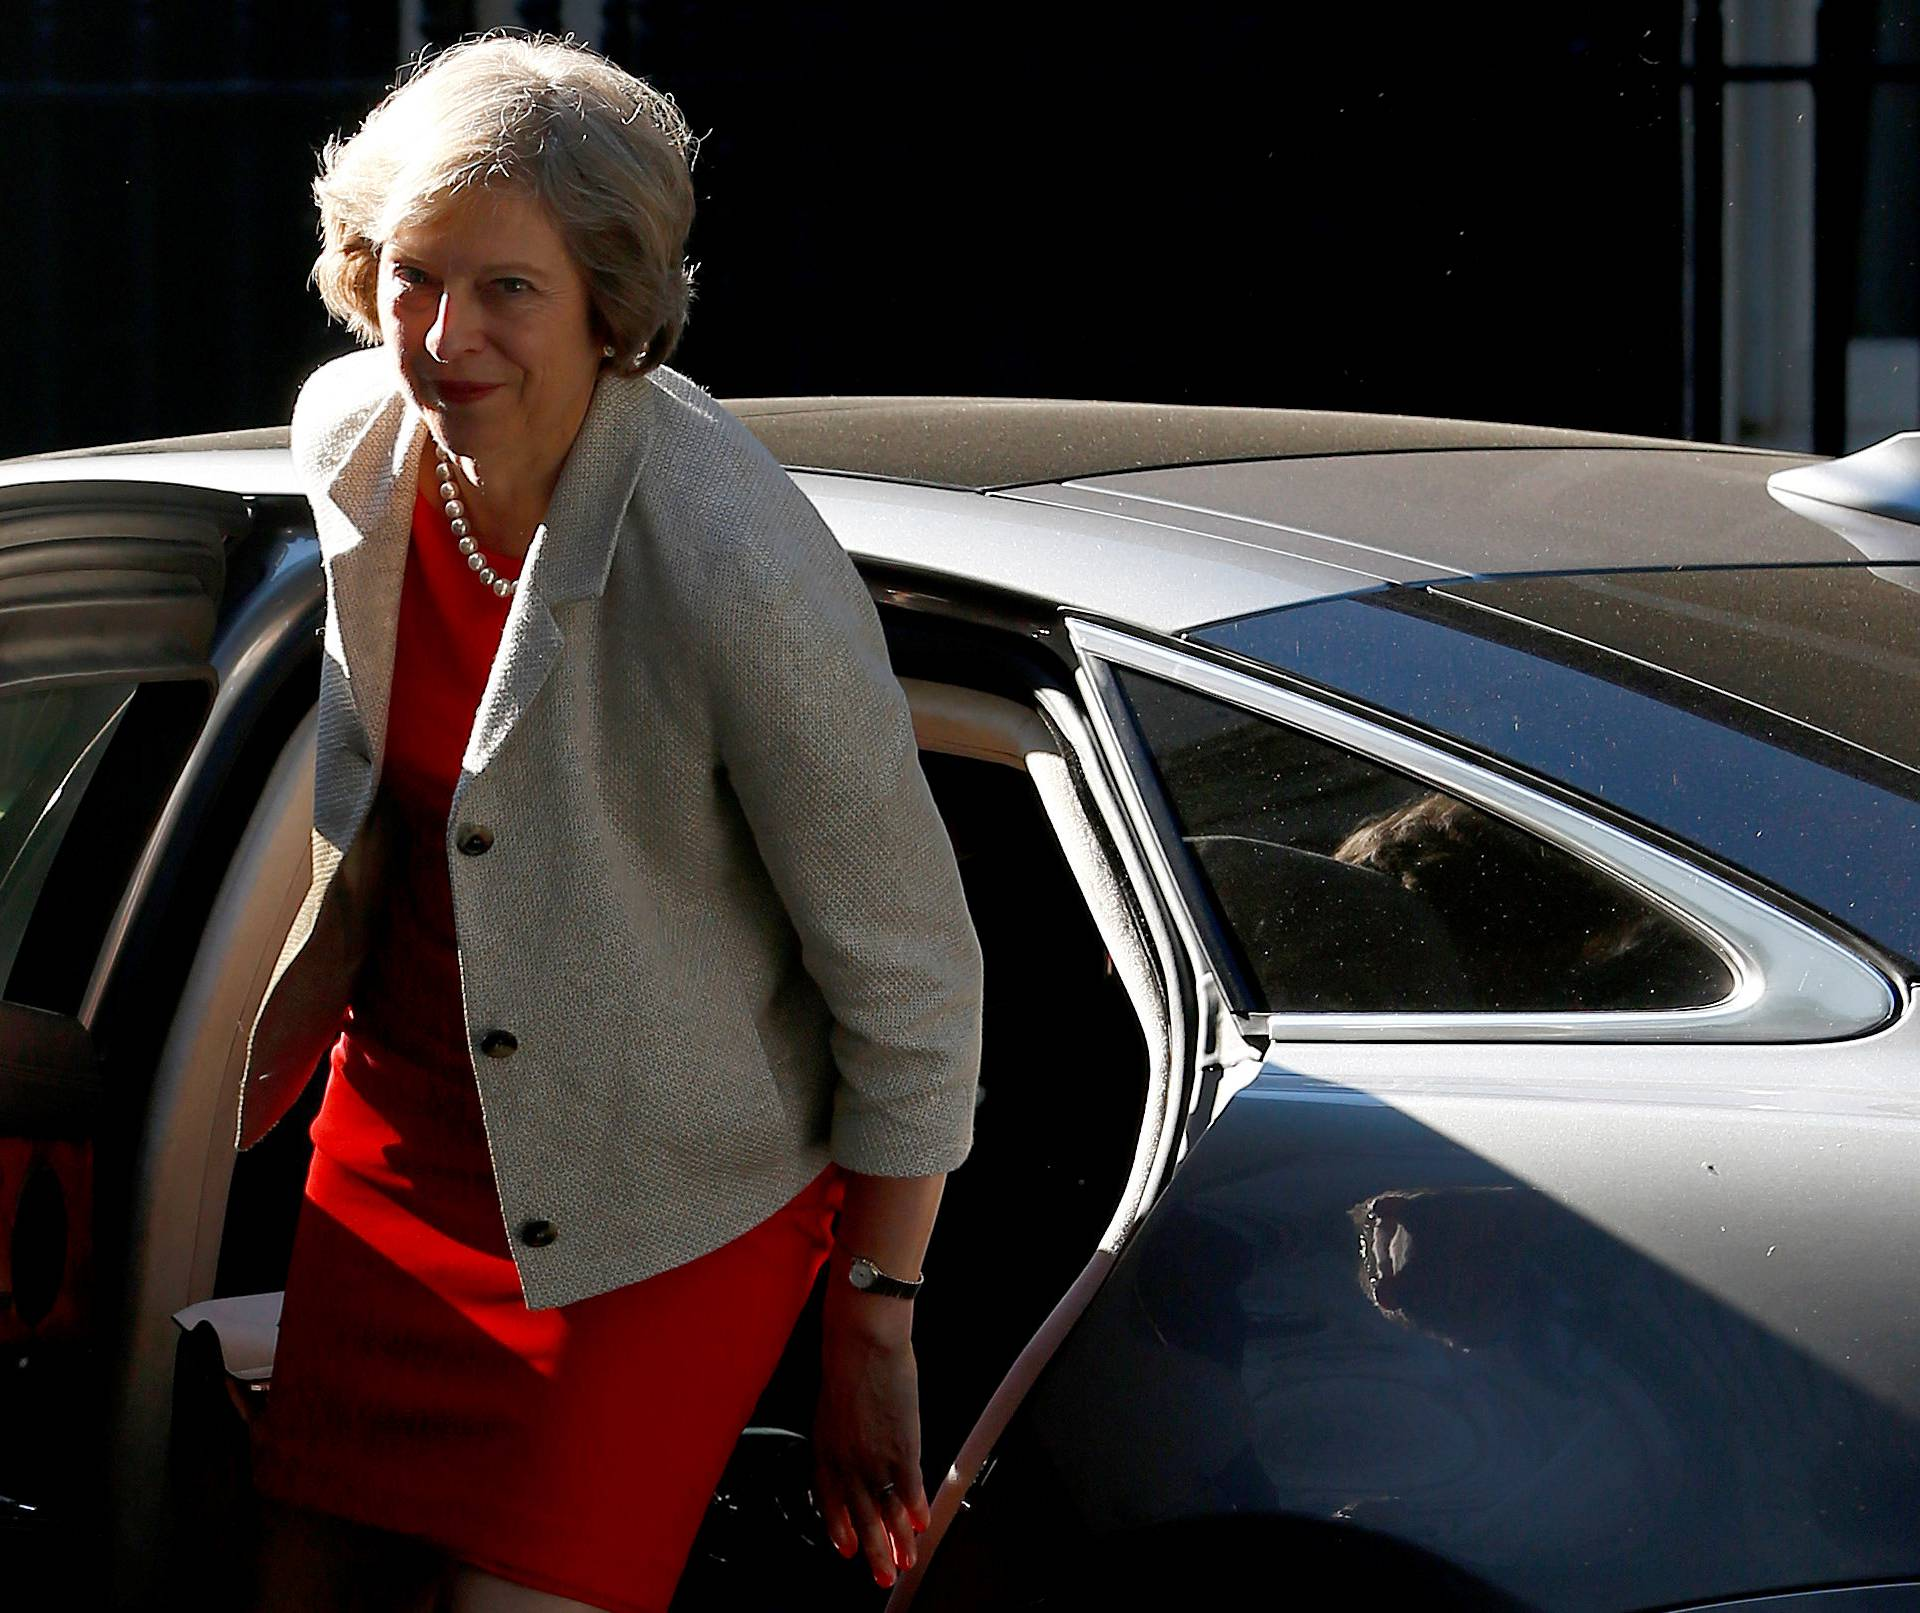 Britain's Prime Minister Theresa May arrives at Downing Street in London